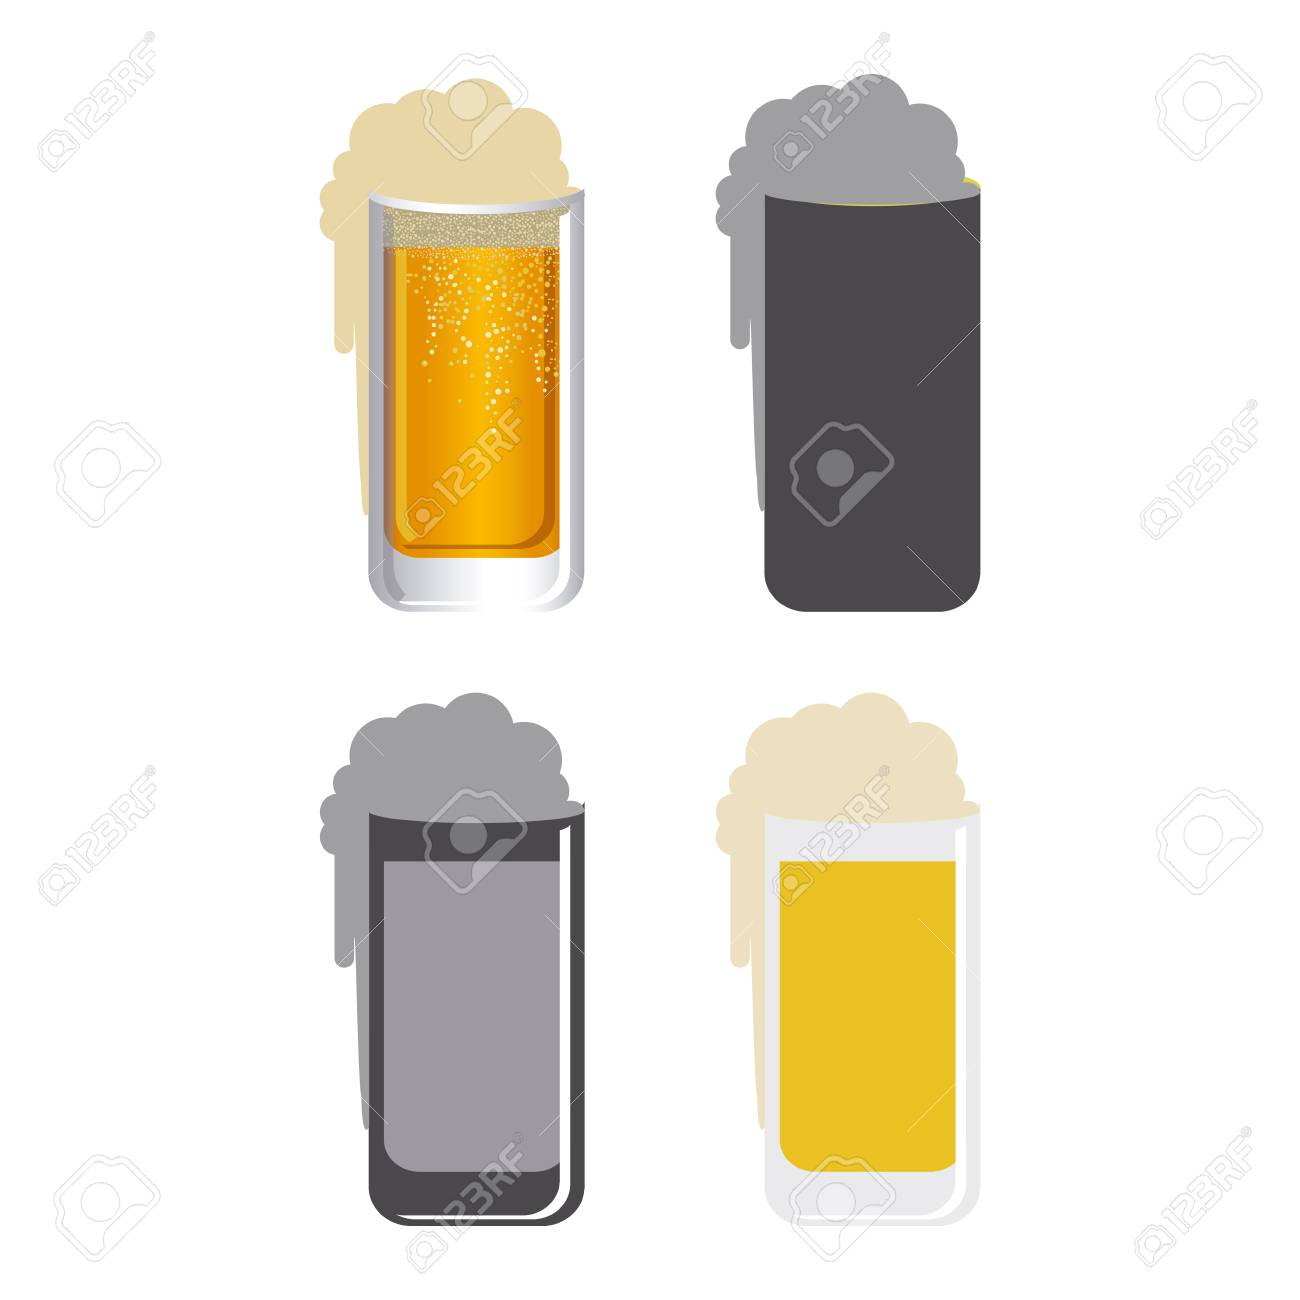 beers design over white  background vector illustration Stock Vector - 24471470